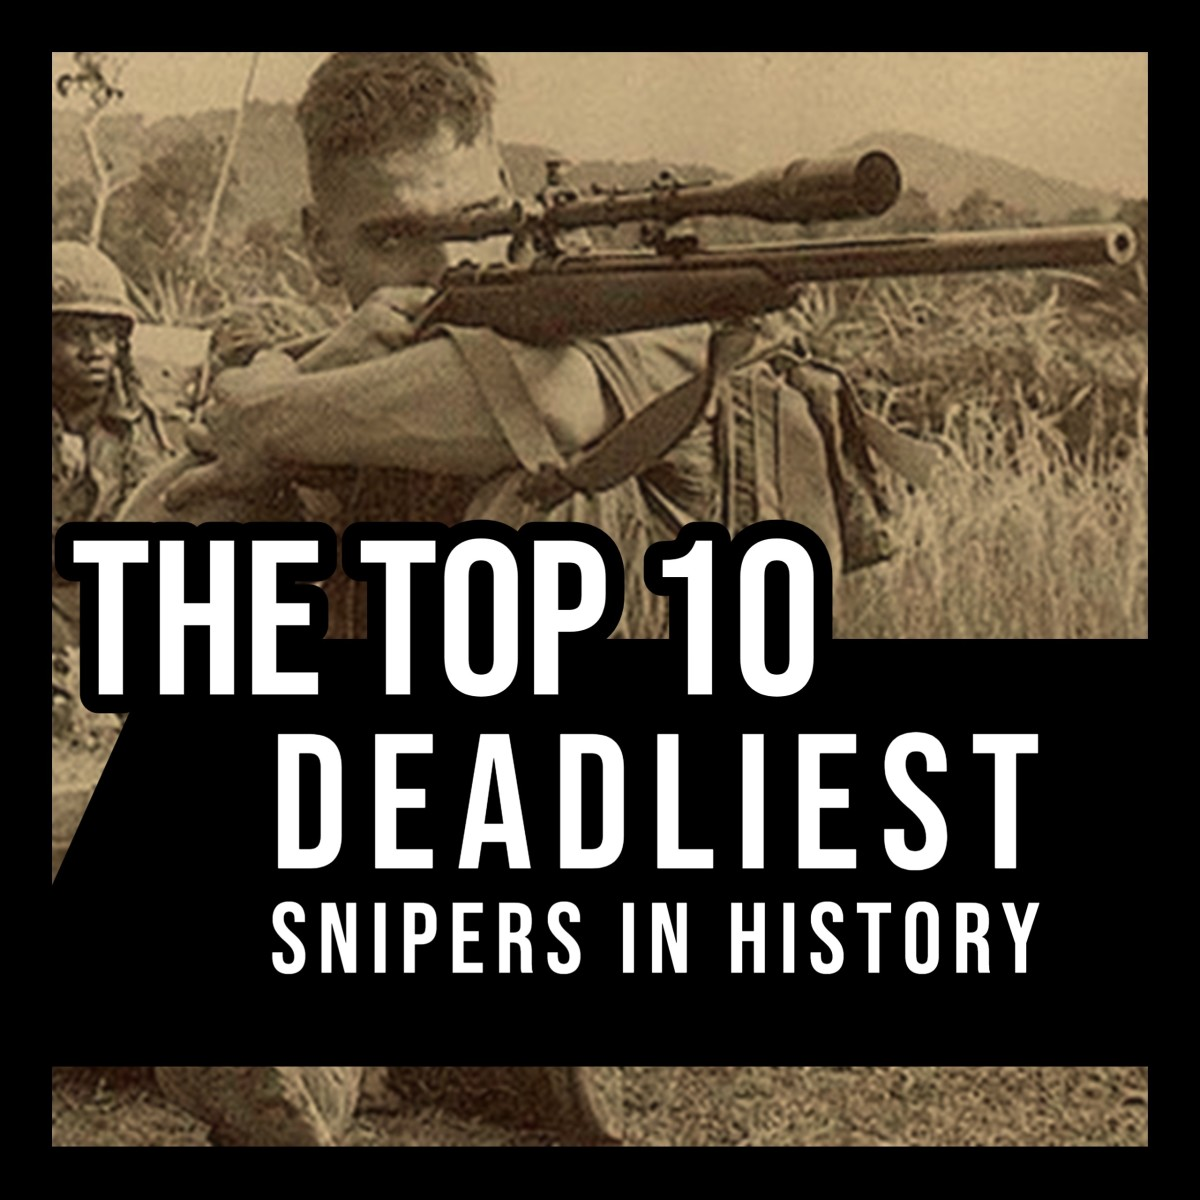 The Top Ten Deadliest Snipers in History